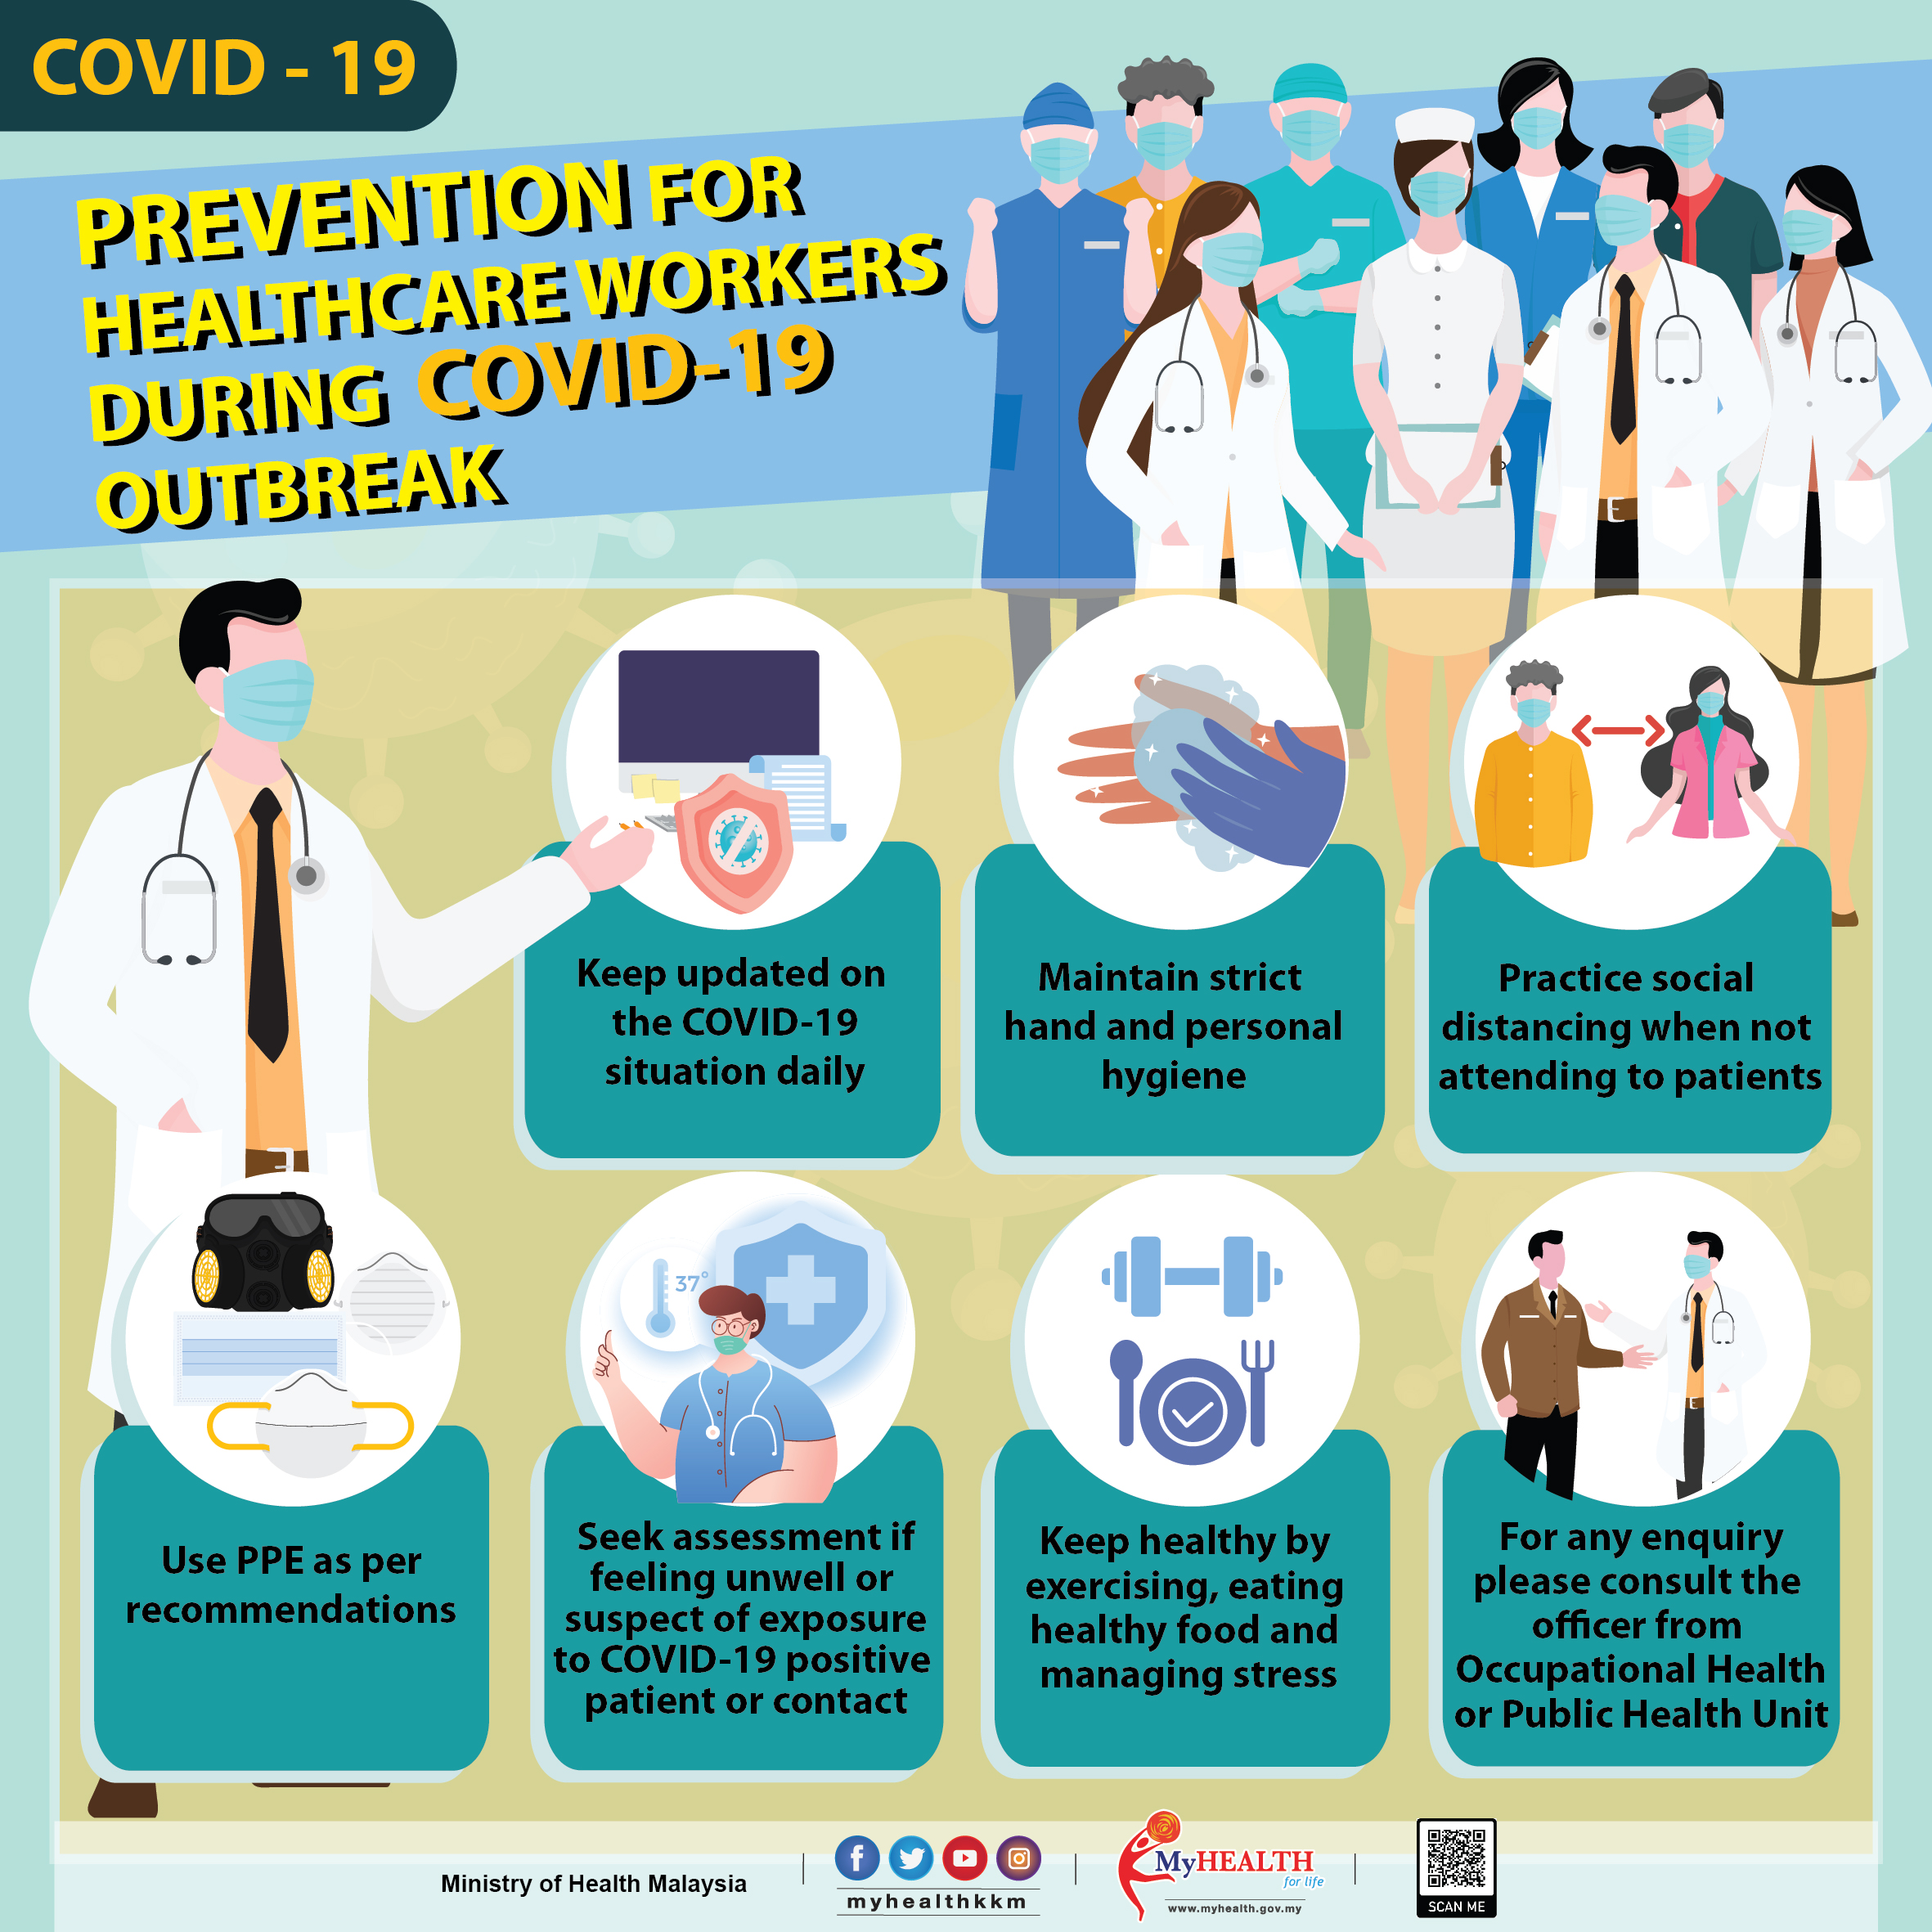 Prevention For Healthcare Workers During COVID-19 Outbreak